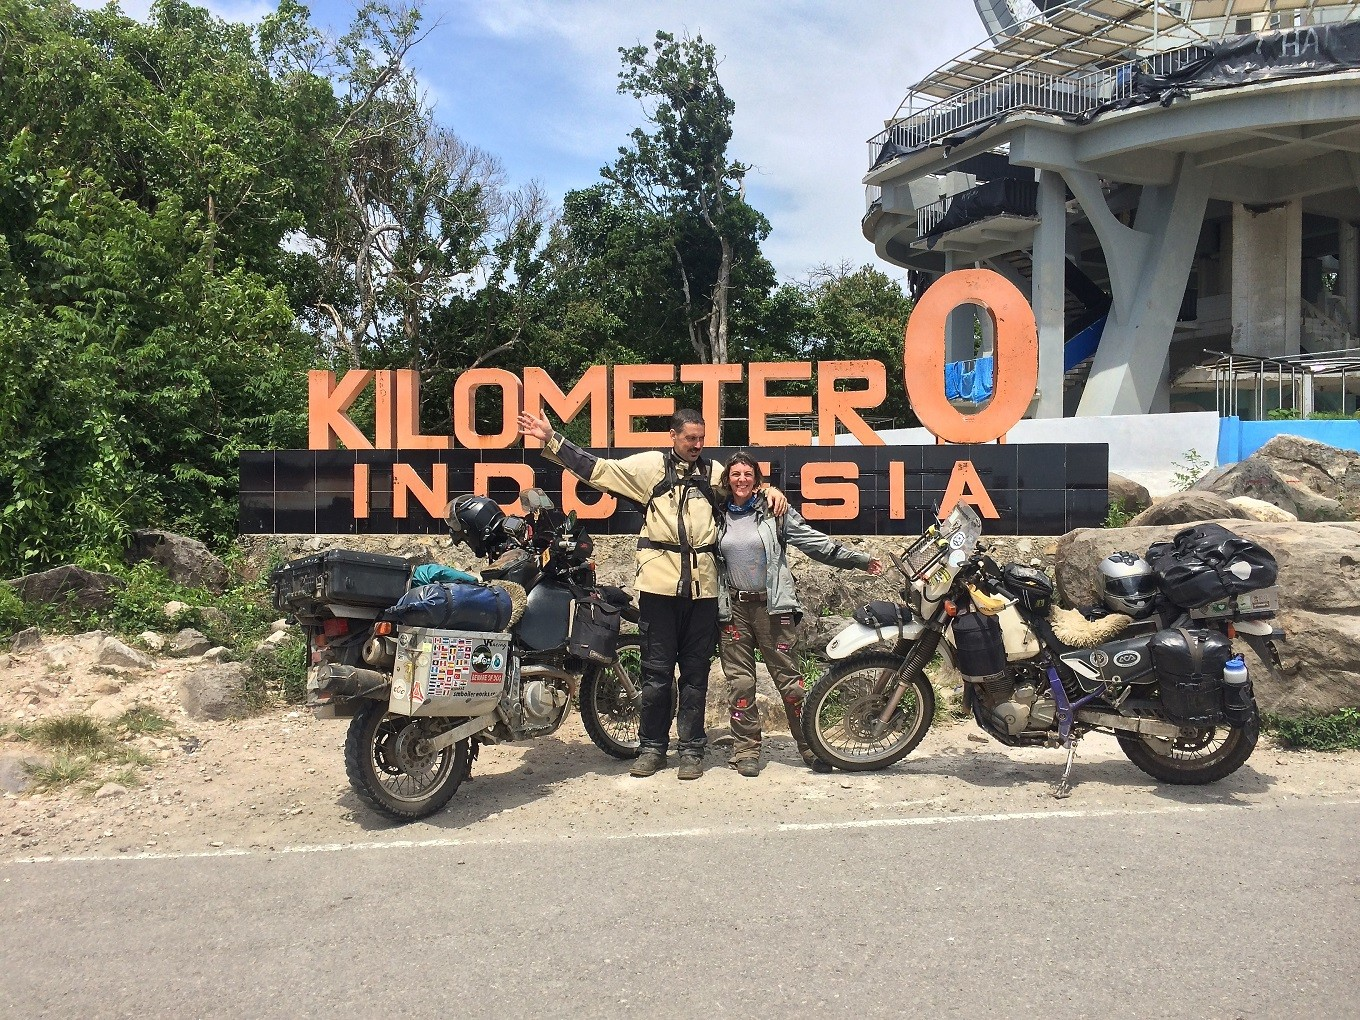 US couple visit Indonesia after traveling to 41 countries by motorcycle